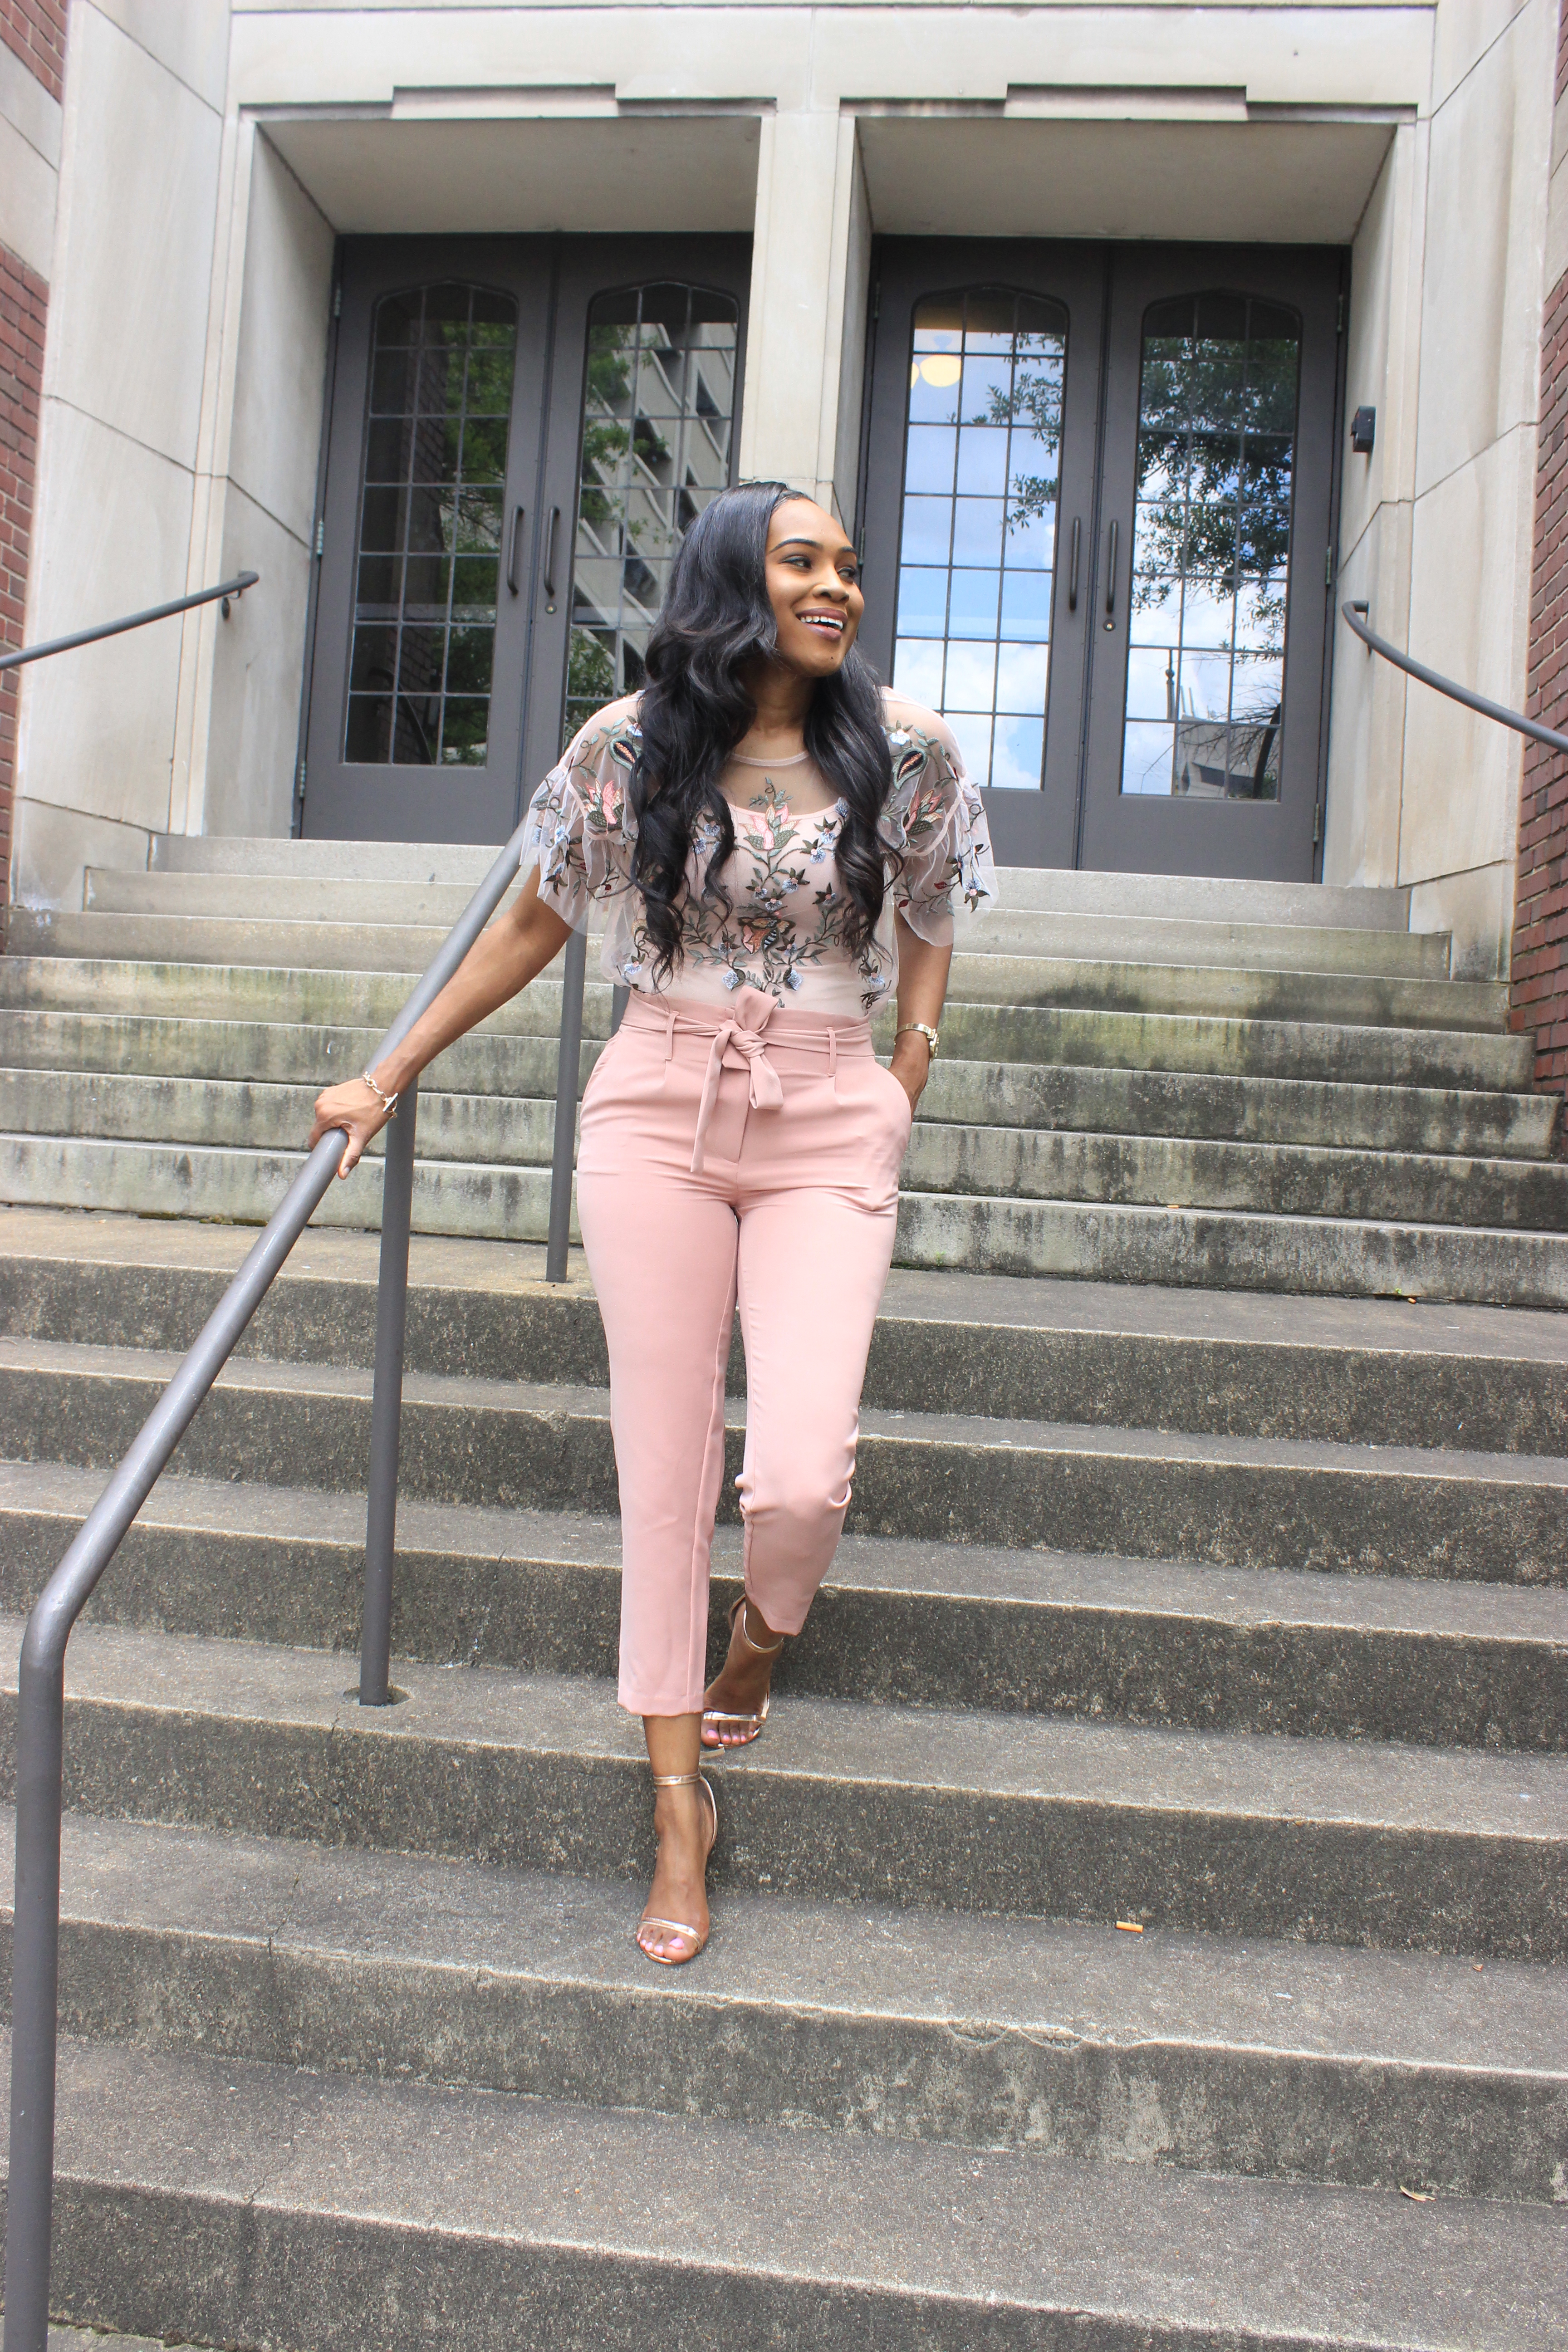 Style-files-Daila-Floral- Embroidered-Applique- Flounce-Sleeve-Sheer- Top-High-waist-pink-tie-front-pants-Birmingham-top-blogger-Alabama-top-blogger-oohlalablog-3